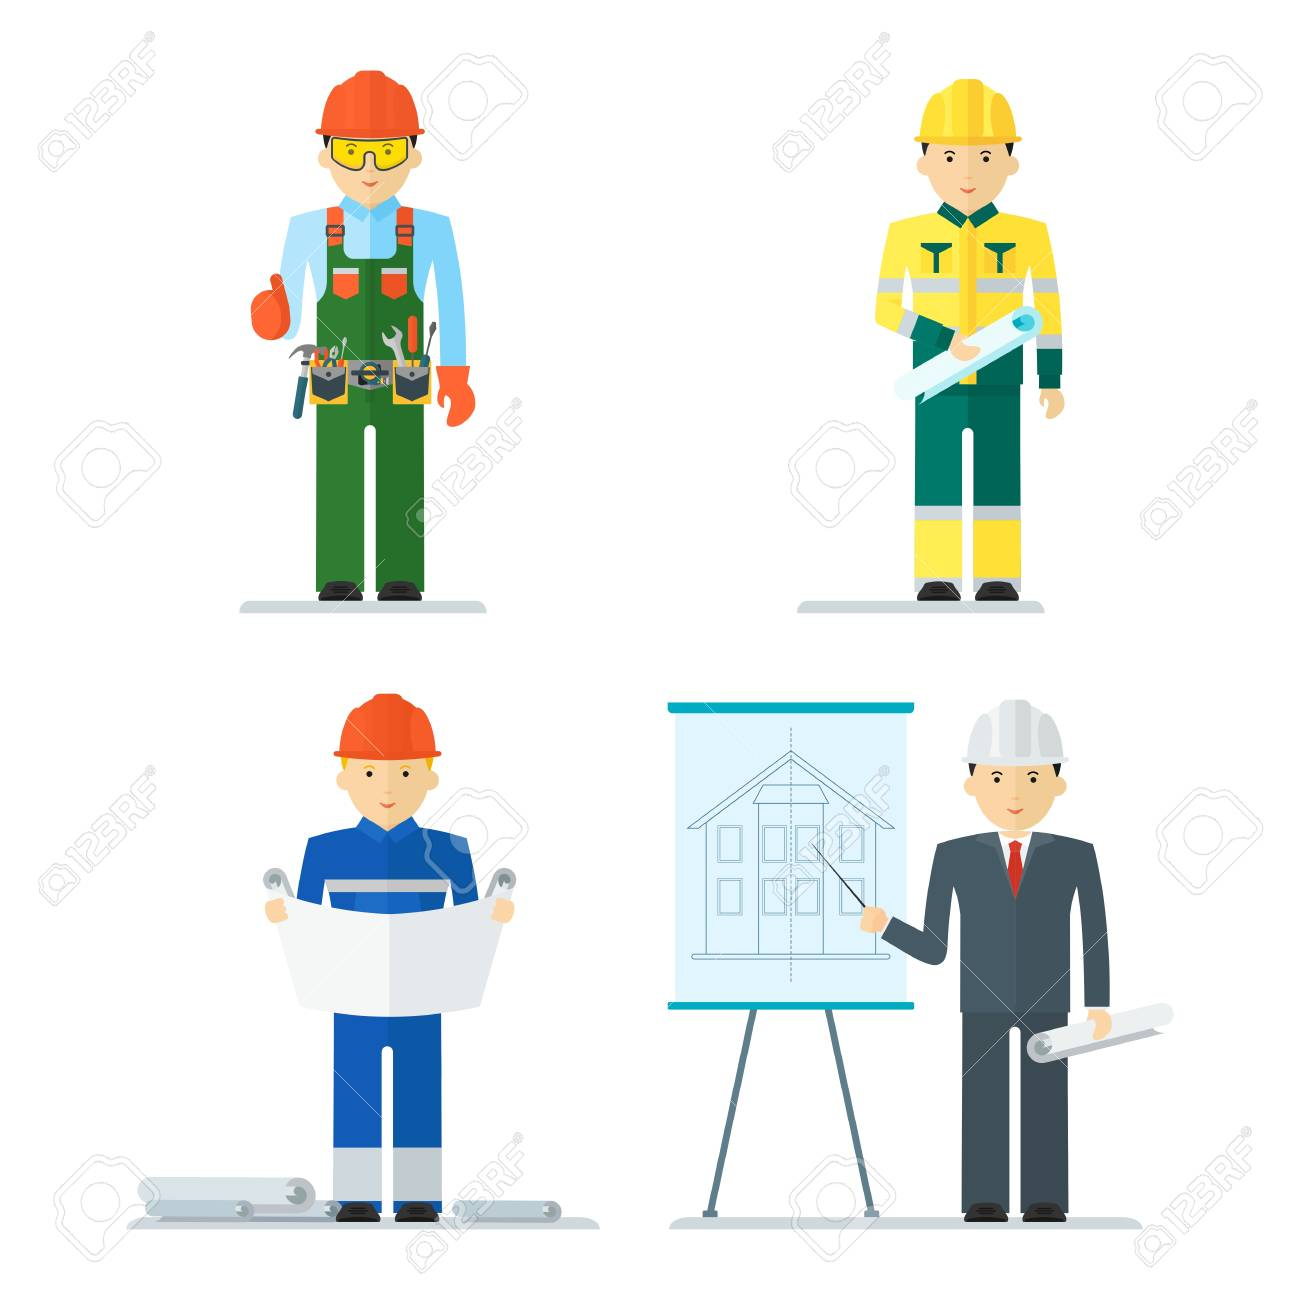 Engineer clipart production engineer.